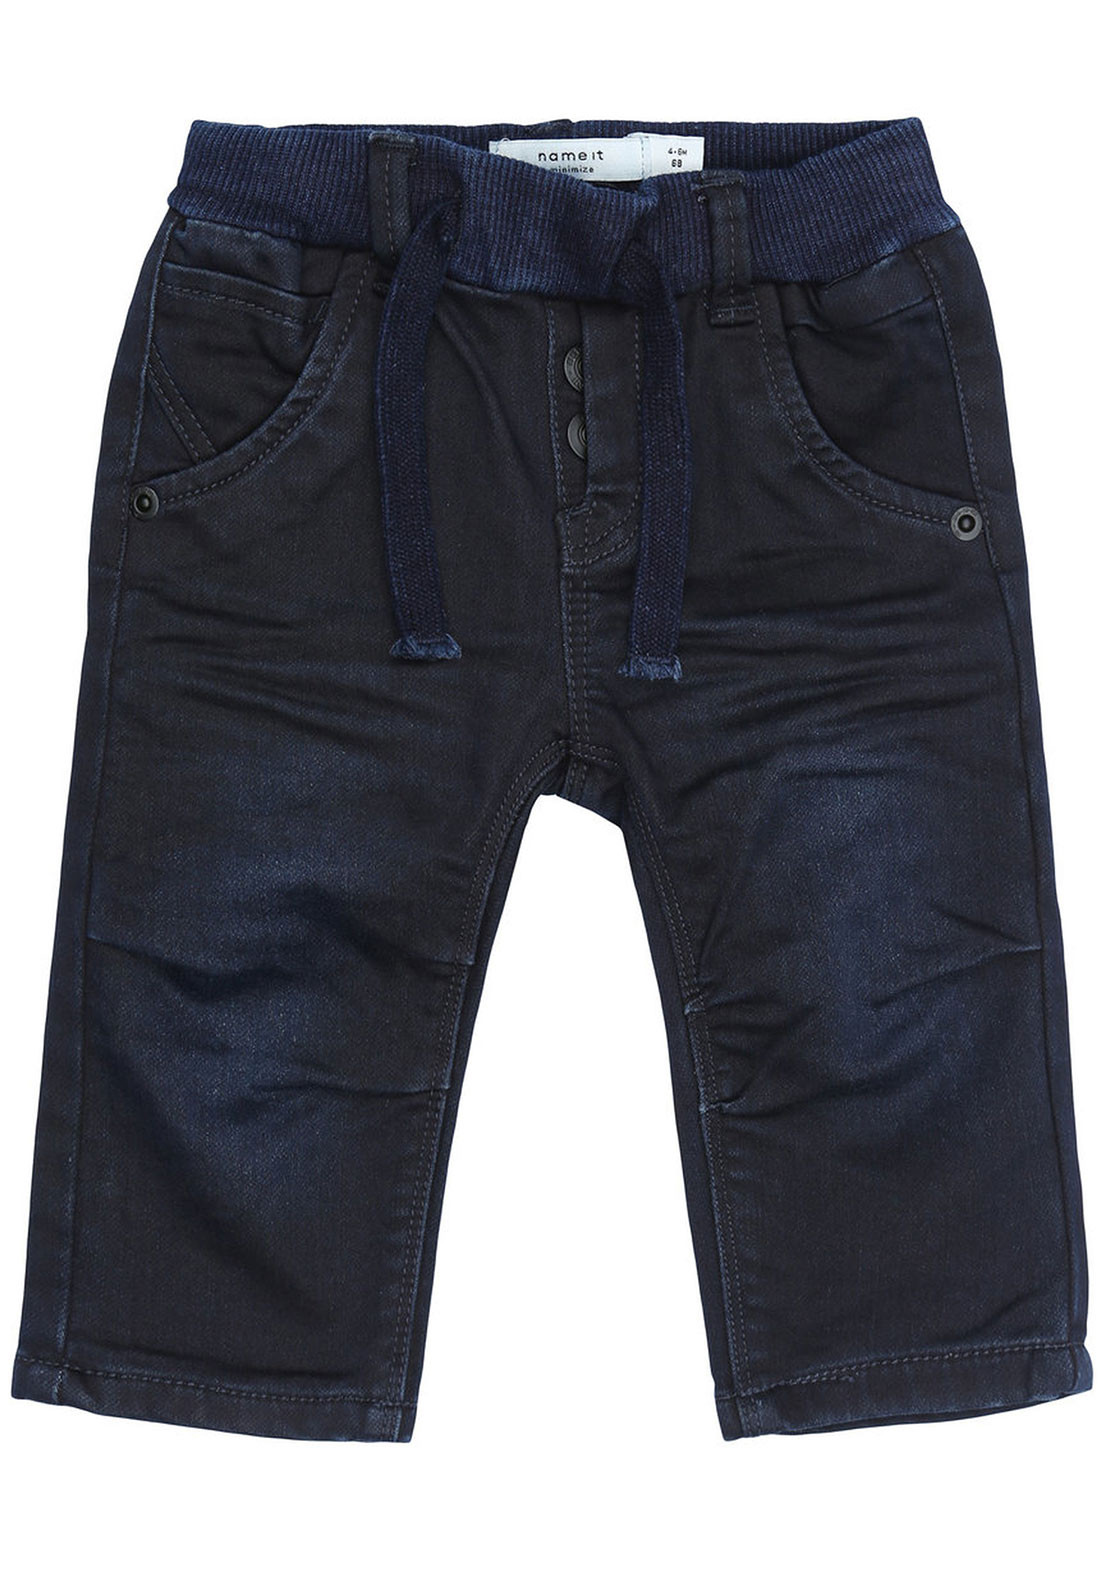 Name It Baby Boys And Jeans, Blue